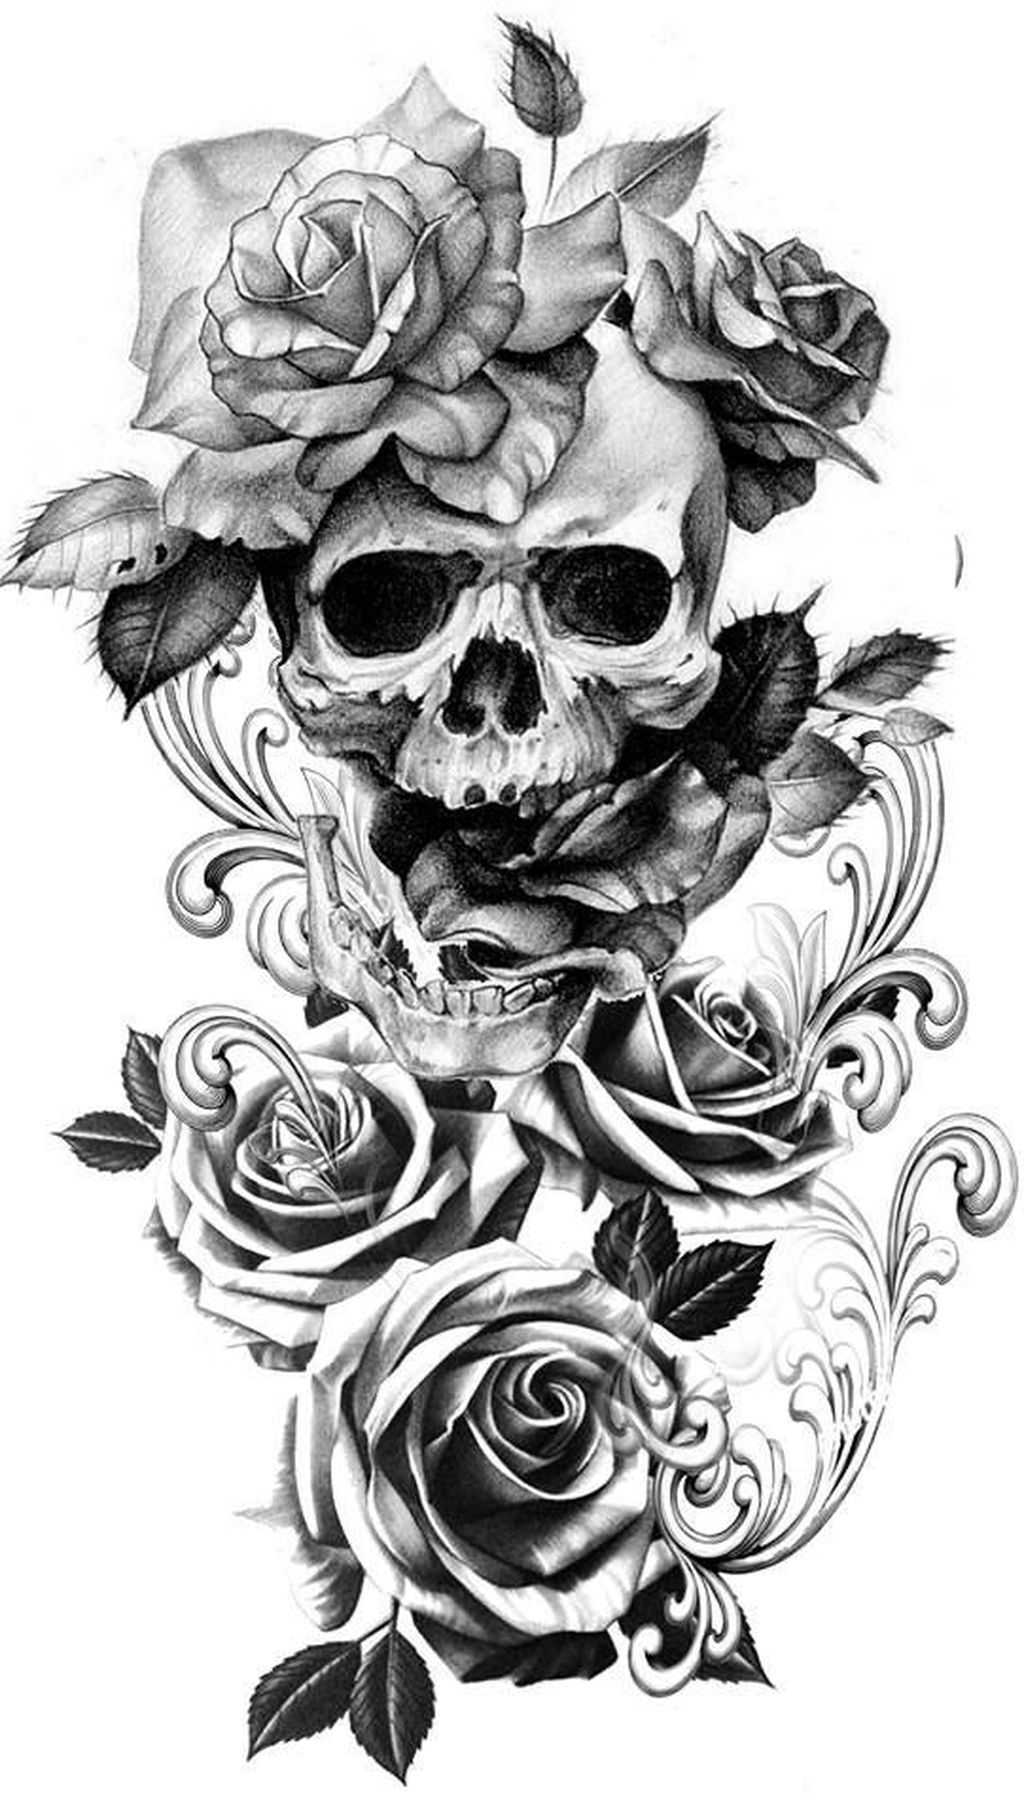 40 Unique Tattoo Drawings Ideas For Your Inspiration In 2020 Skull Rose Tattoos Skull Tattoo Flowers Tattoos